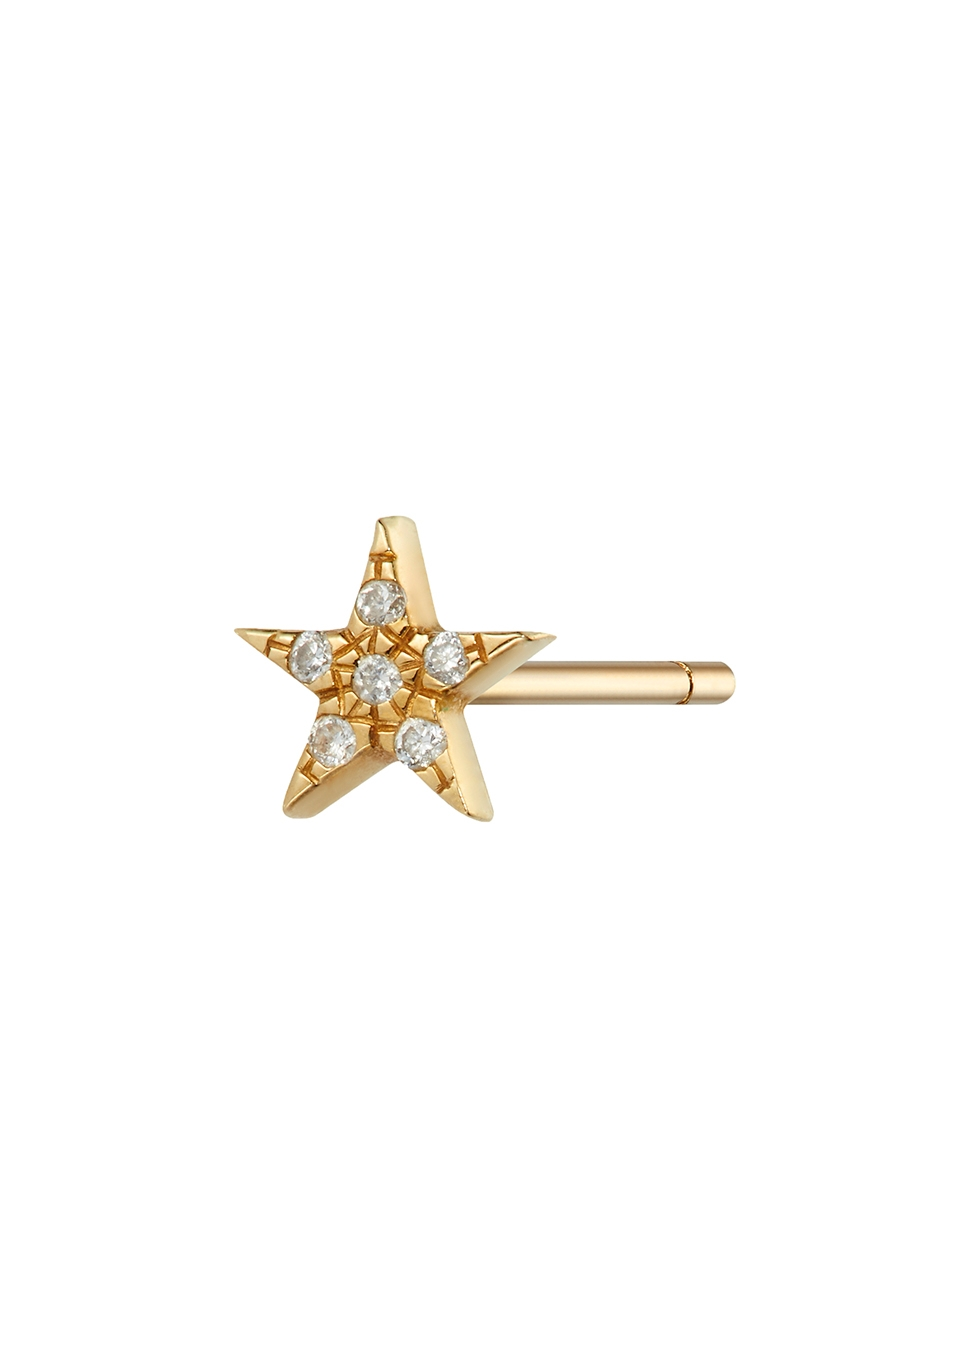 Star diamond-embellished 9kt gold stud earring